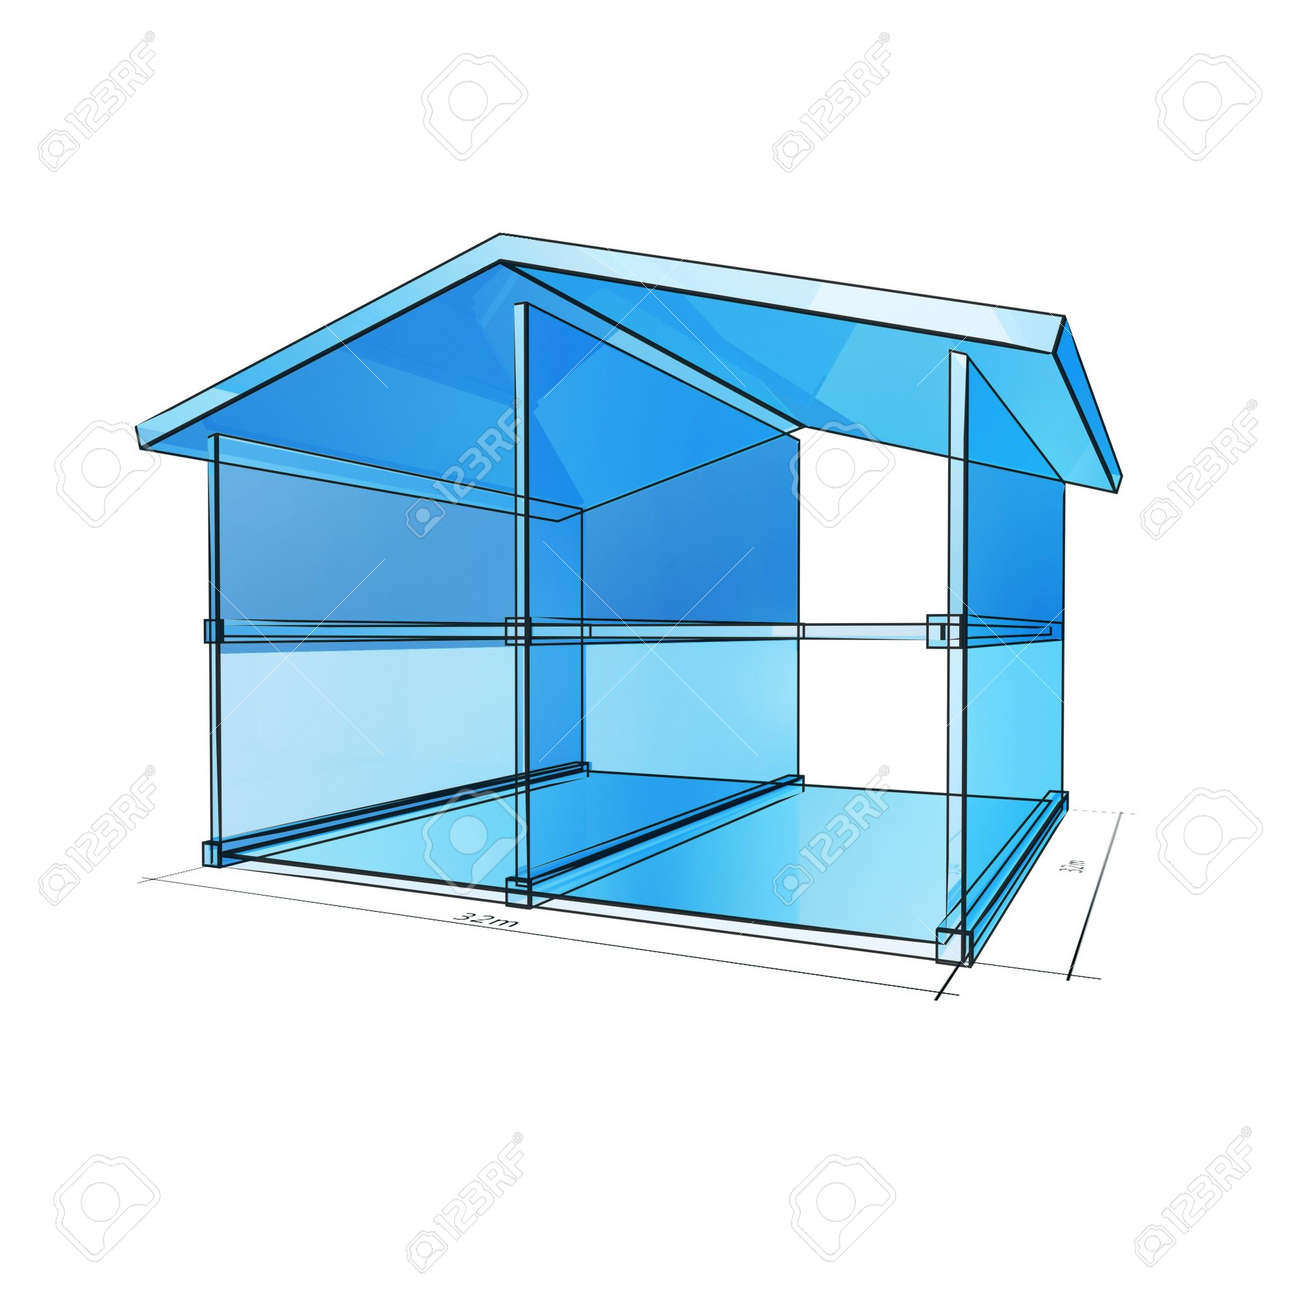 Solid Glass Frame House Blueprint Isolated On White Background Stock Photo    4707754